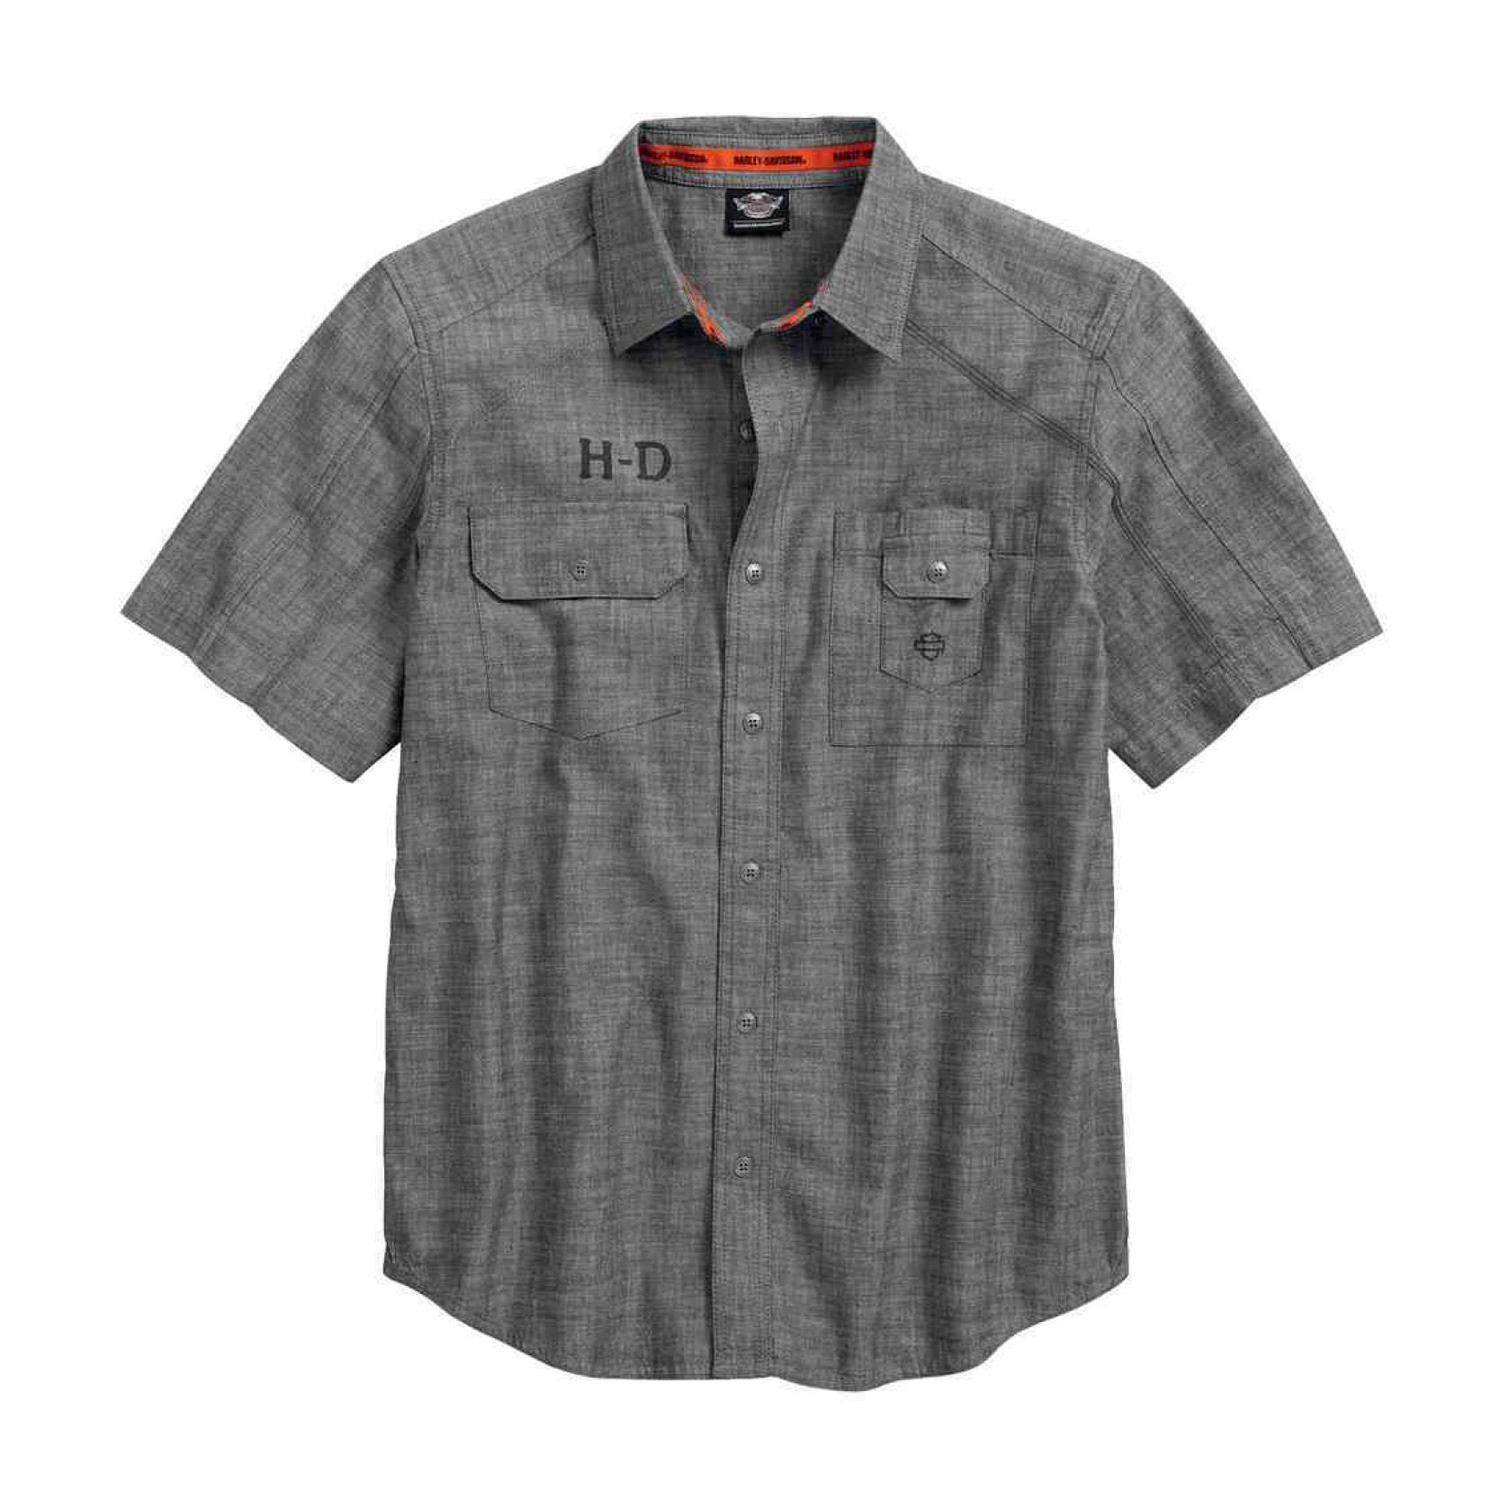 Textured Canvas Short Sleeve Shirt Men